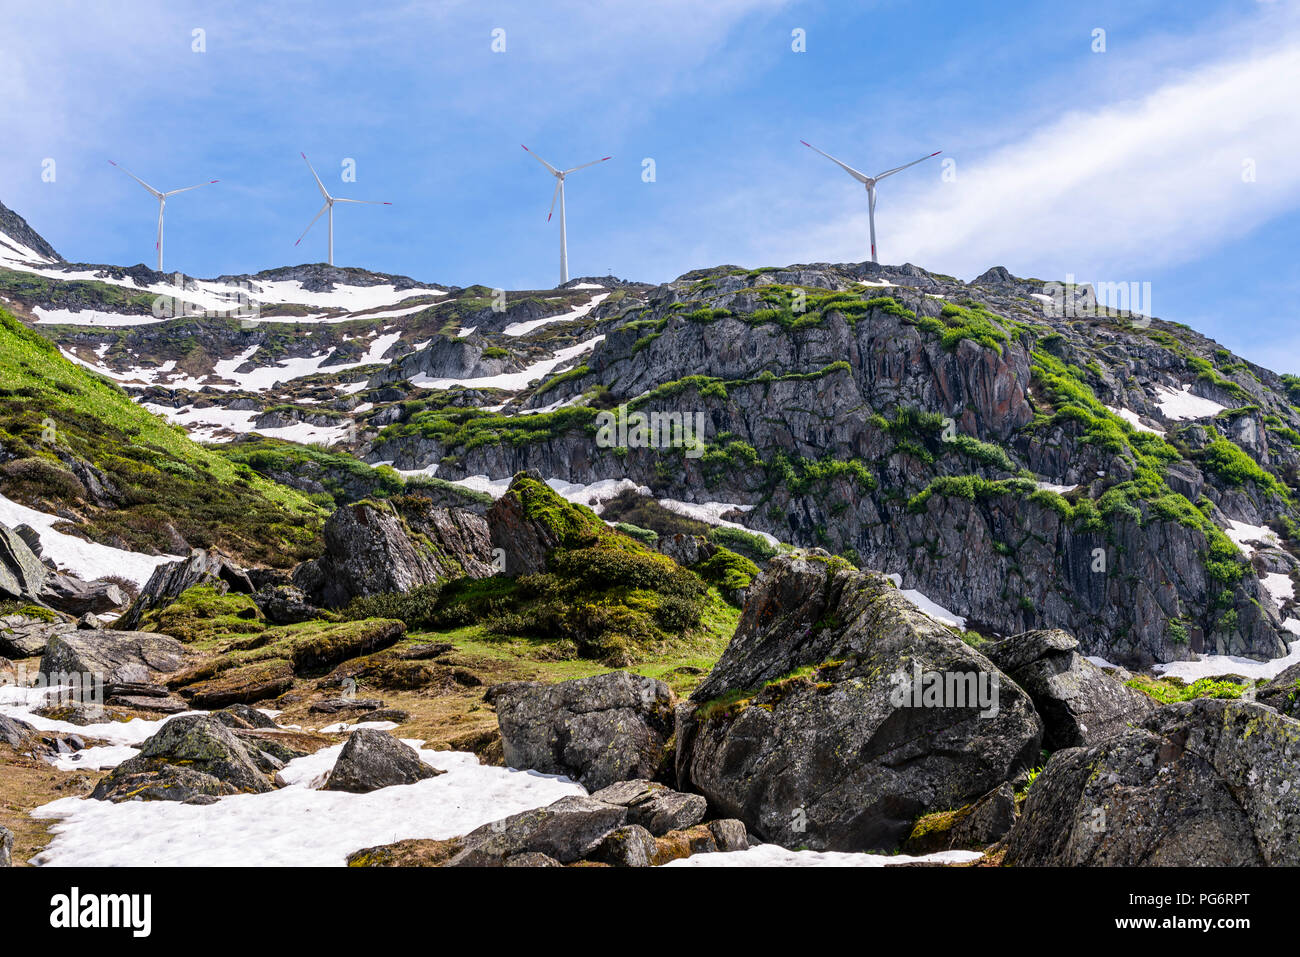 Switzerland, Valais, wind wheels at Nufenen-Pass - Stock Image